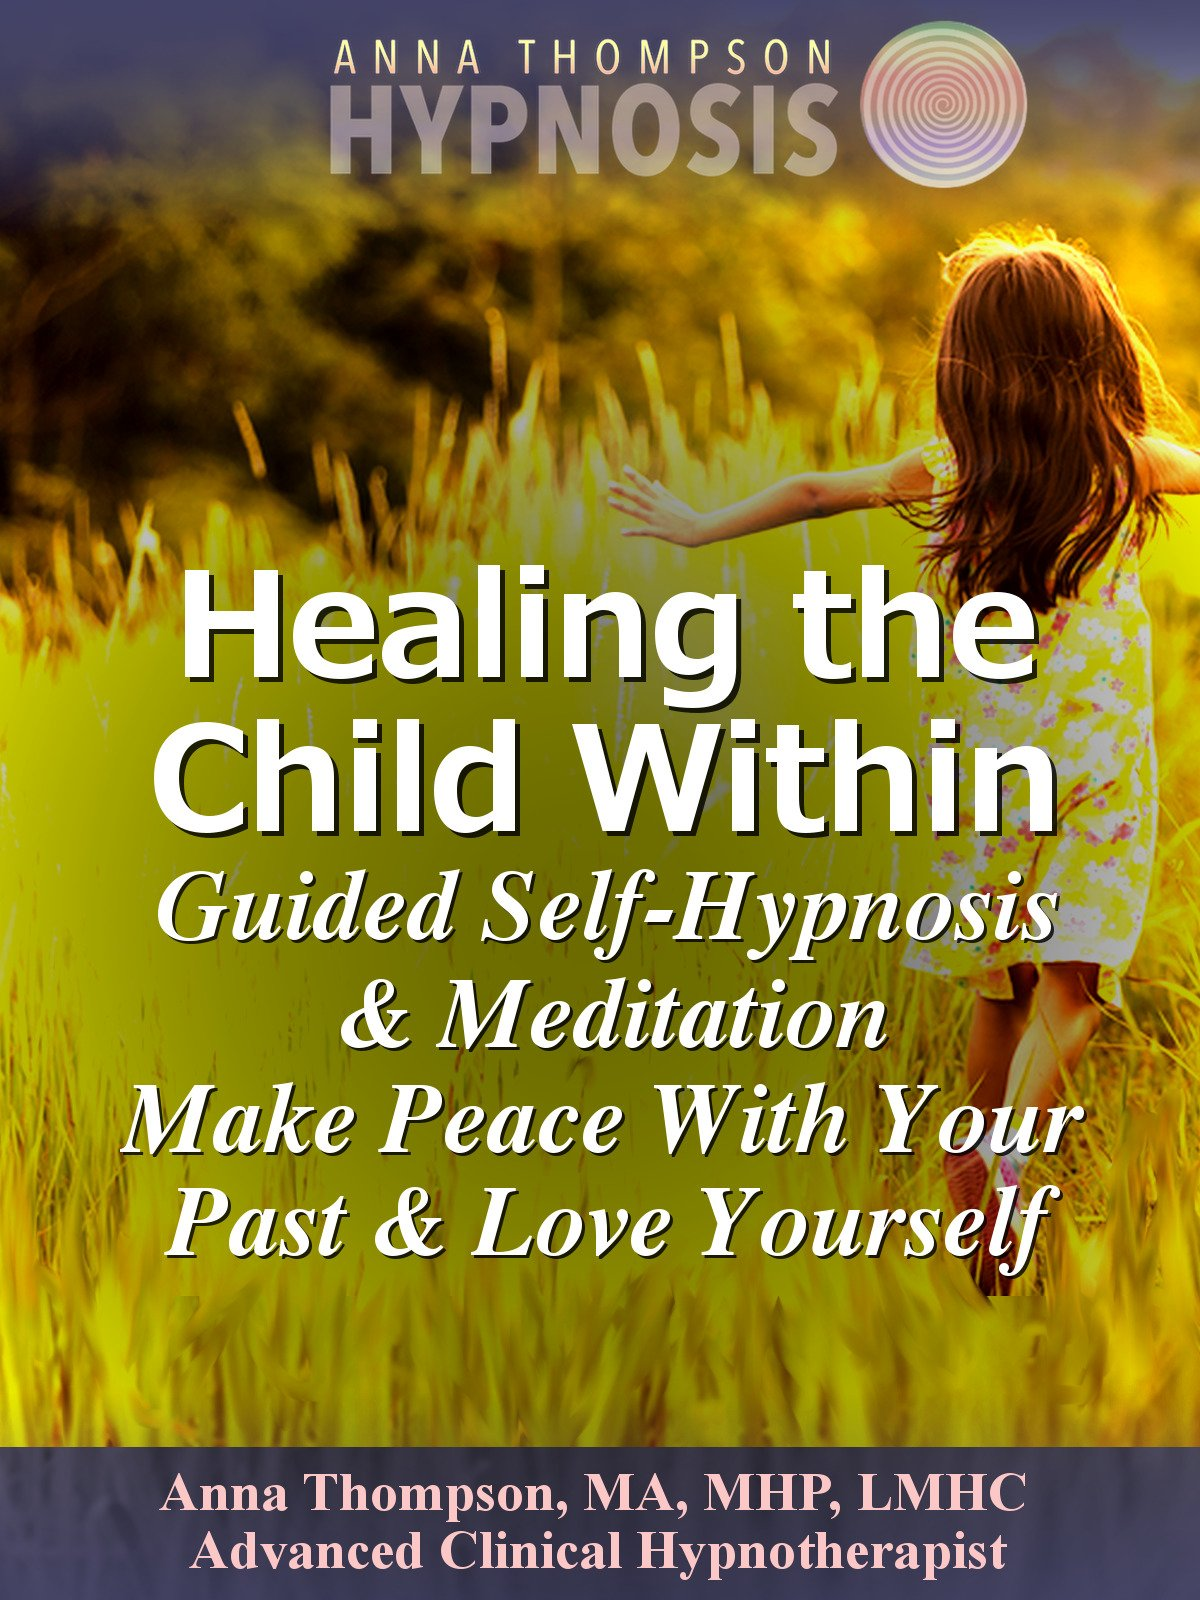 Healing the Child Within Guided Self Hypnosis & Meditation, Make Peace With Your Past & Love Yourself